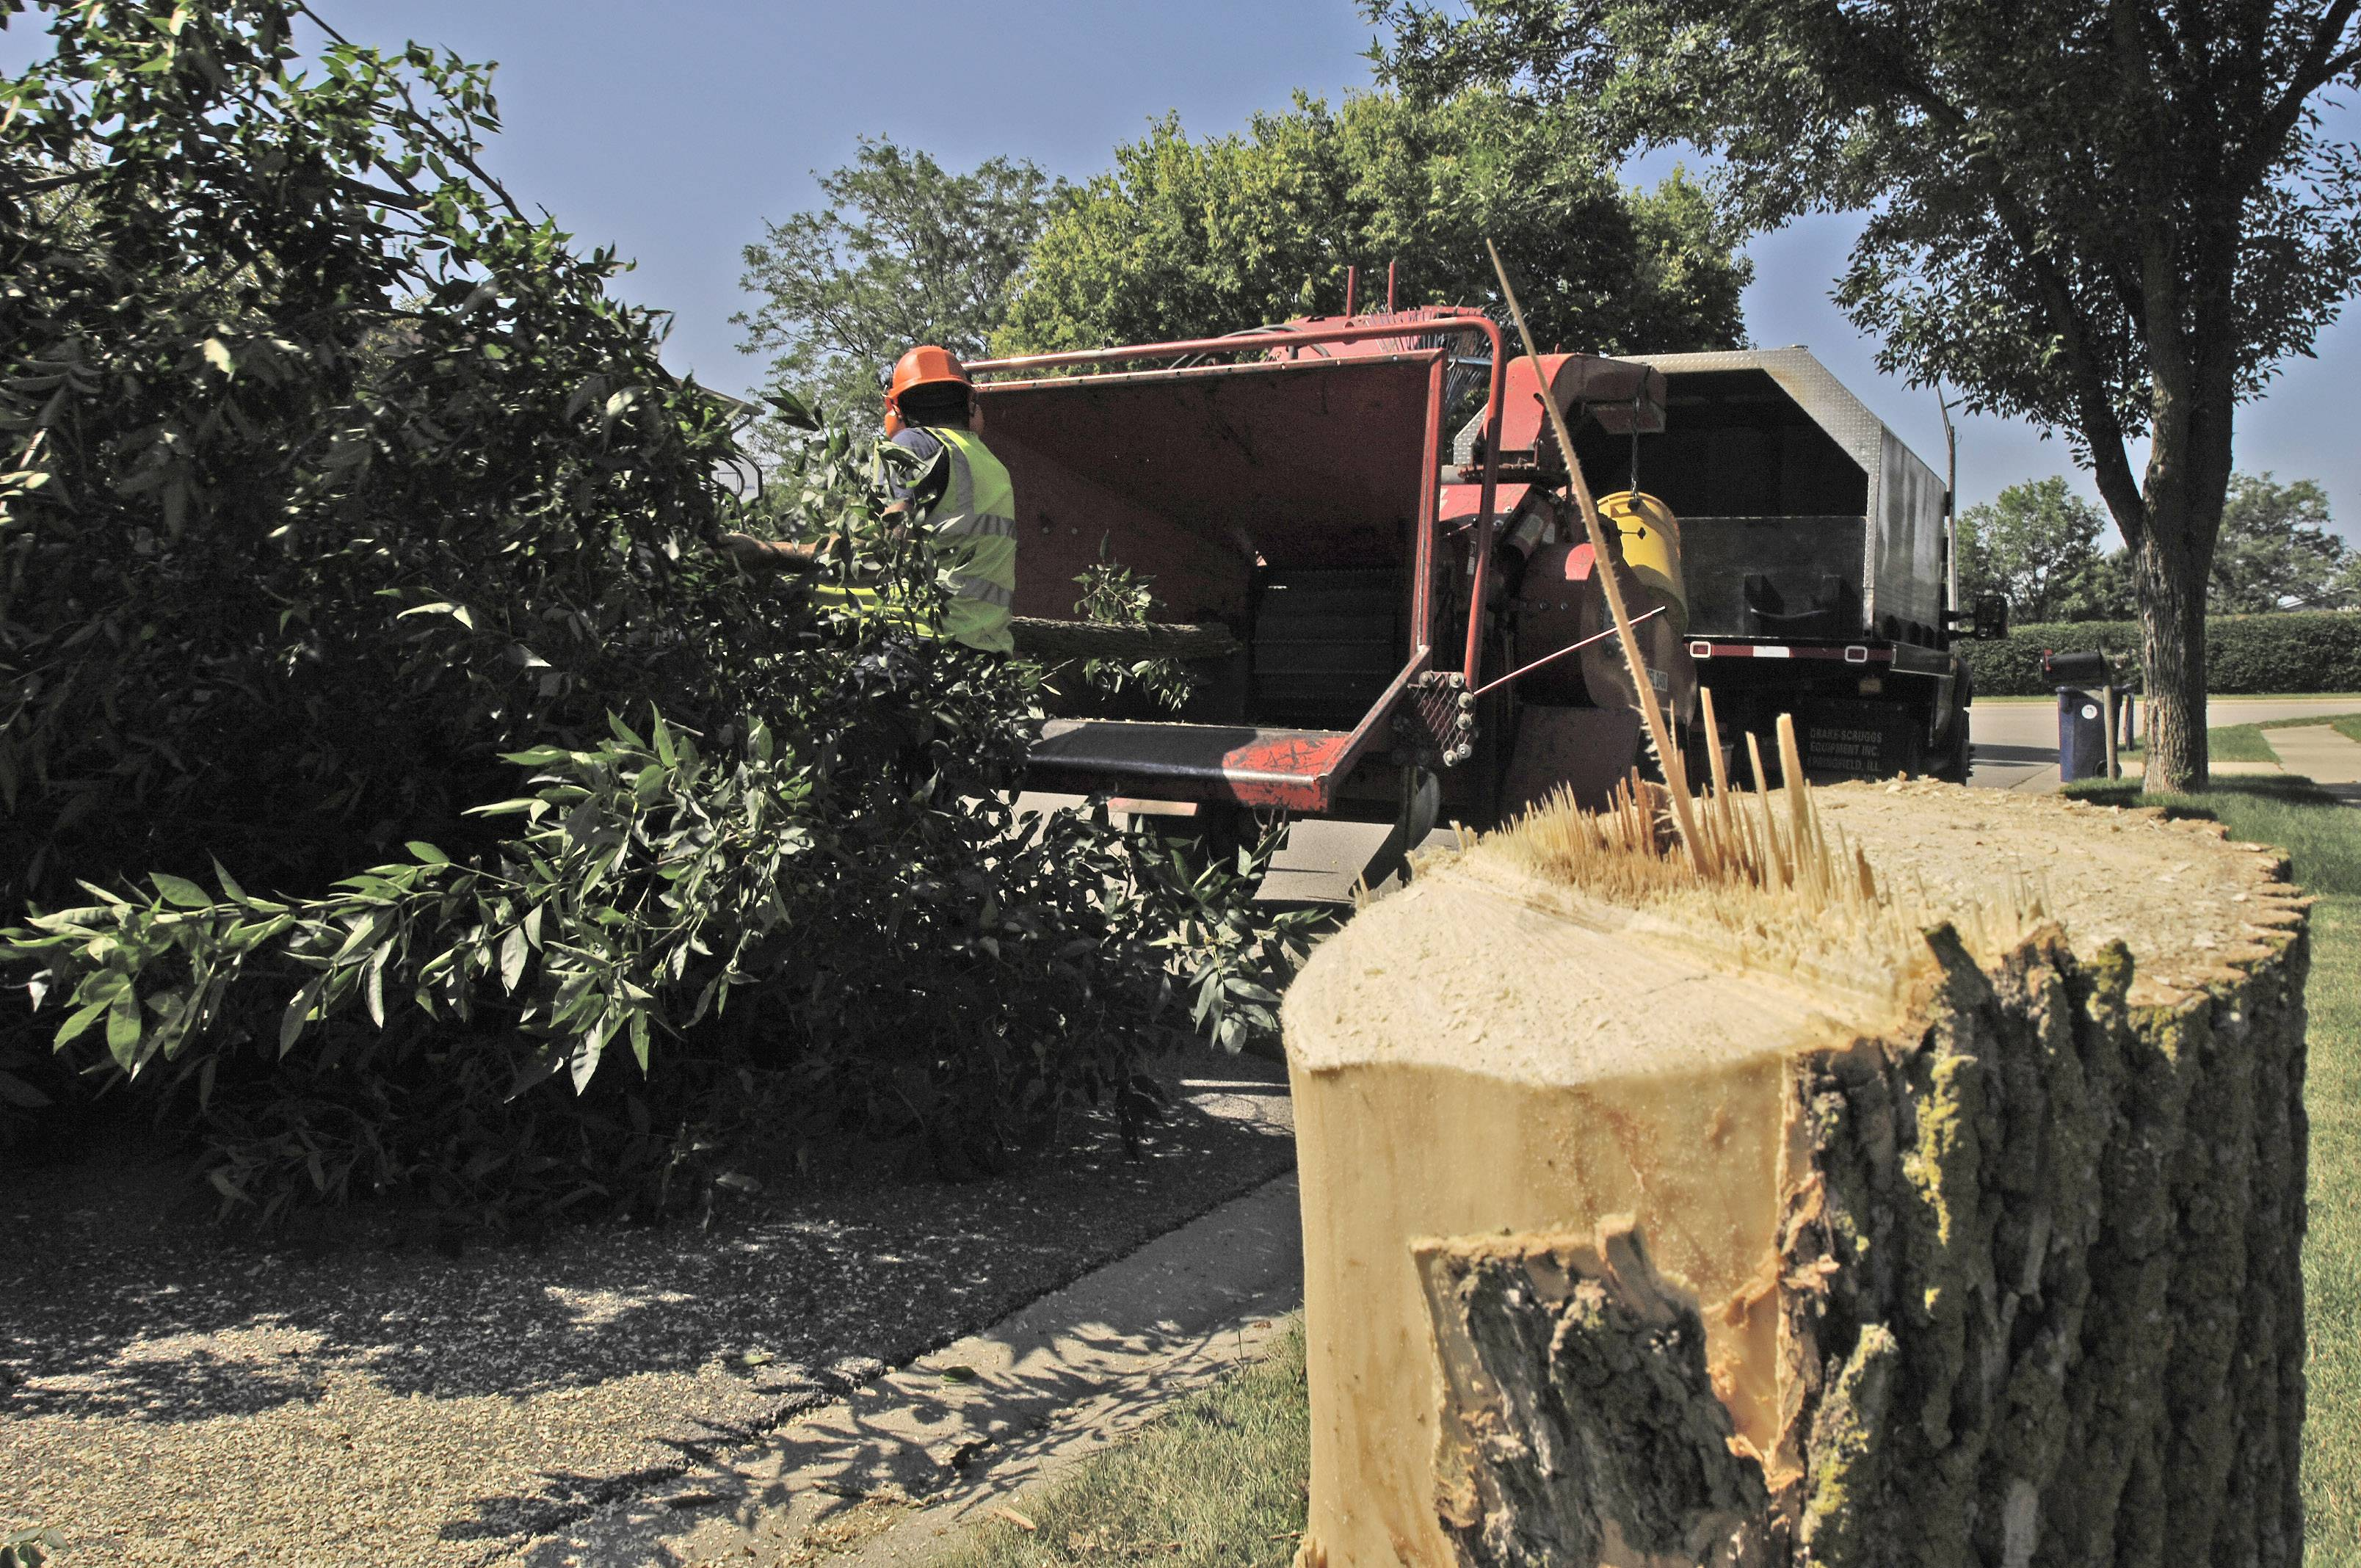 Buffalo Grove is stepping up its efforts to remove ash trees infested by the emerald ash borer. Village officials say crews are cutting down as many as 40 trees a day the make a dent in the estimated 3,000 infested by the insect.